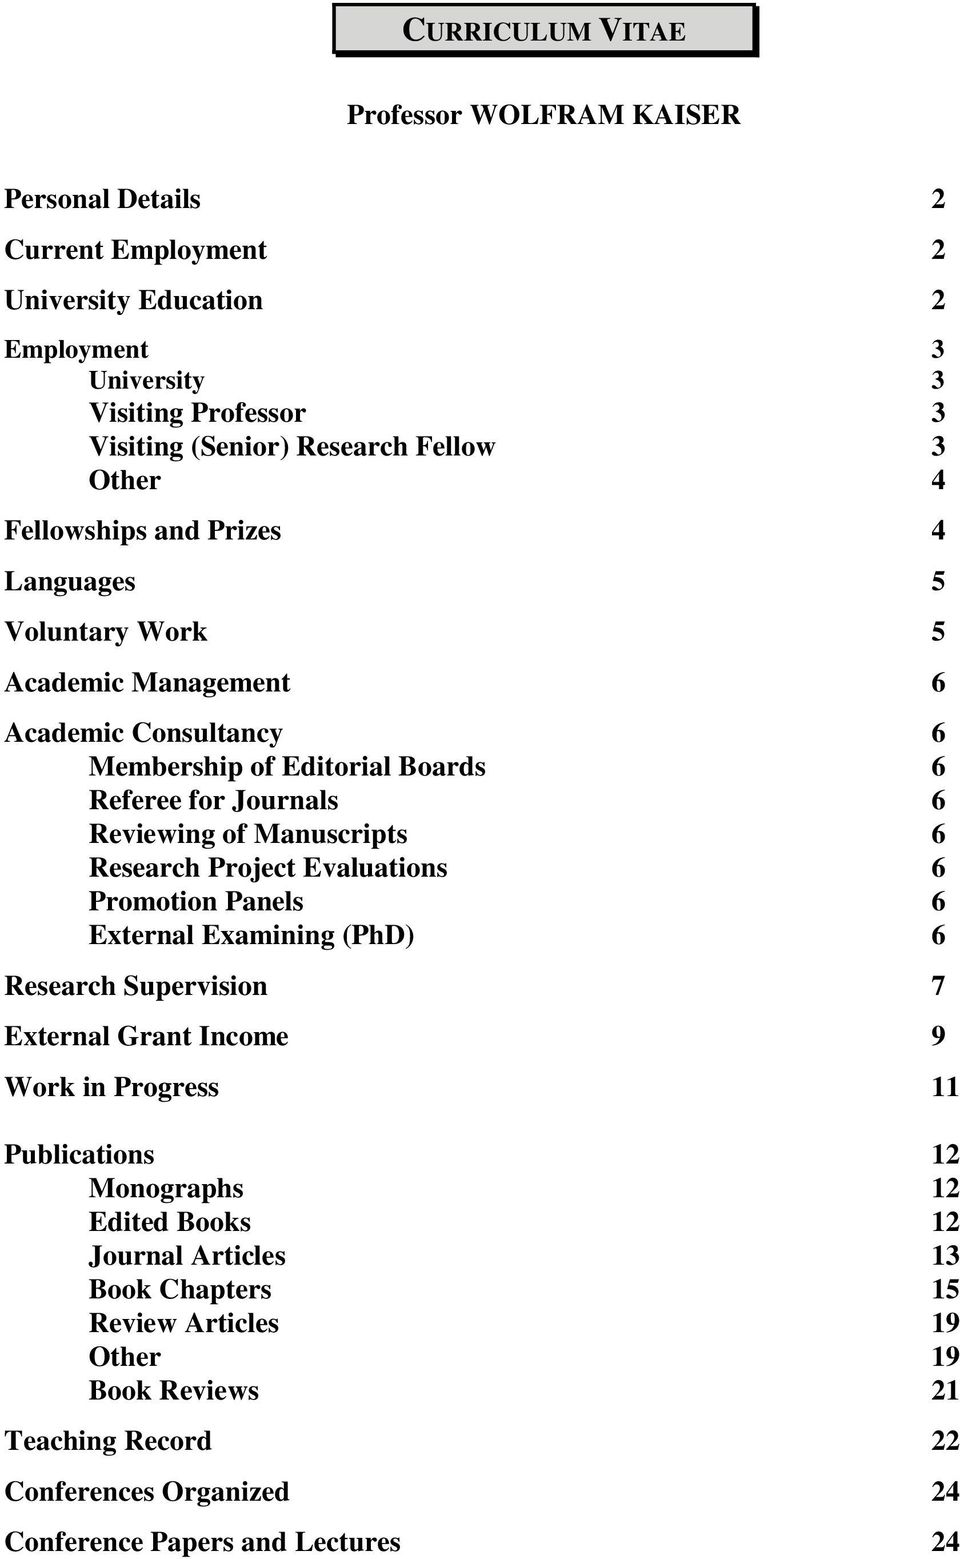 of Manuscripts 6 Research Project Evaluations 6 Promotion Panels 6 External Examining (PhD) 6 Research Supervision 7 External Grant Income 9 Work in Progress 11 Publications 12